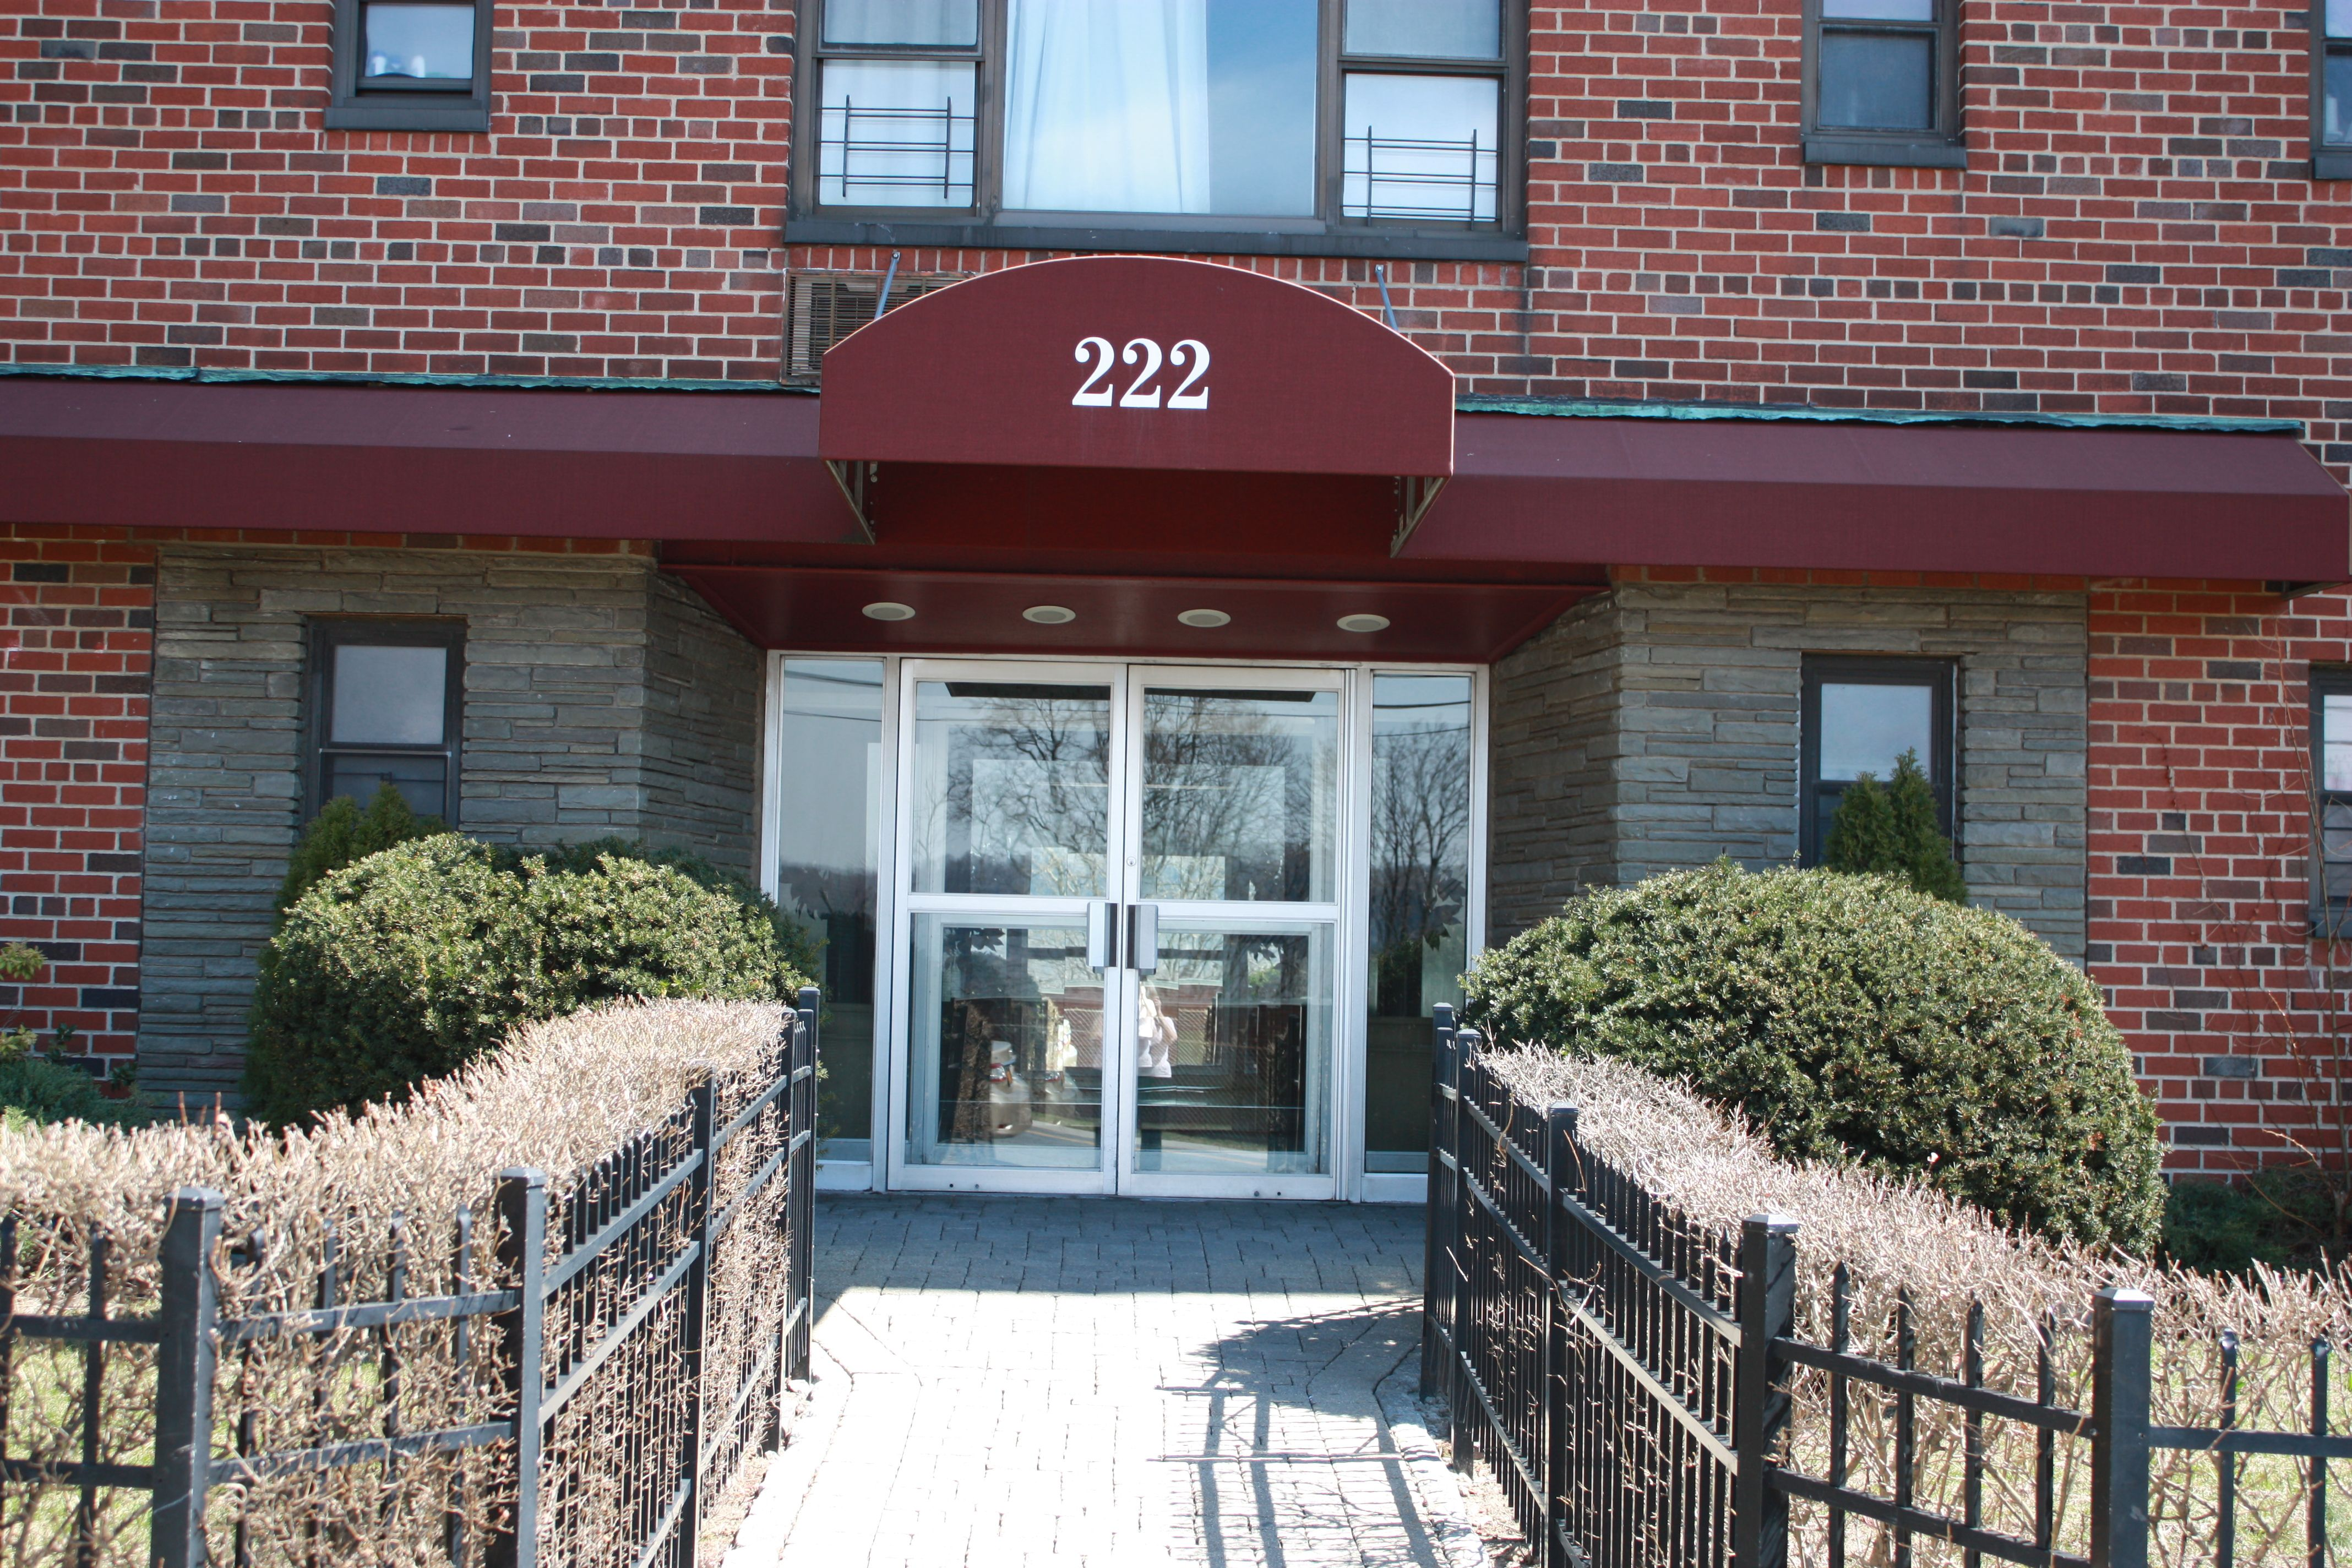 222 north broadway yonkers ny outdoor decor yonkers